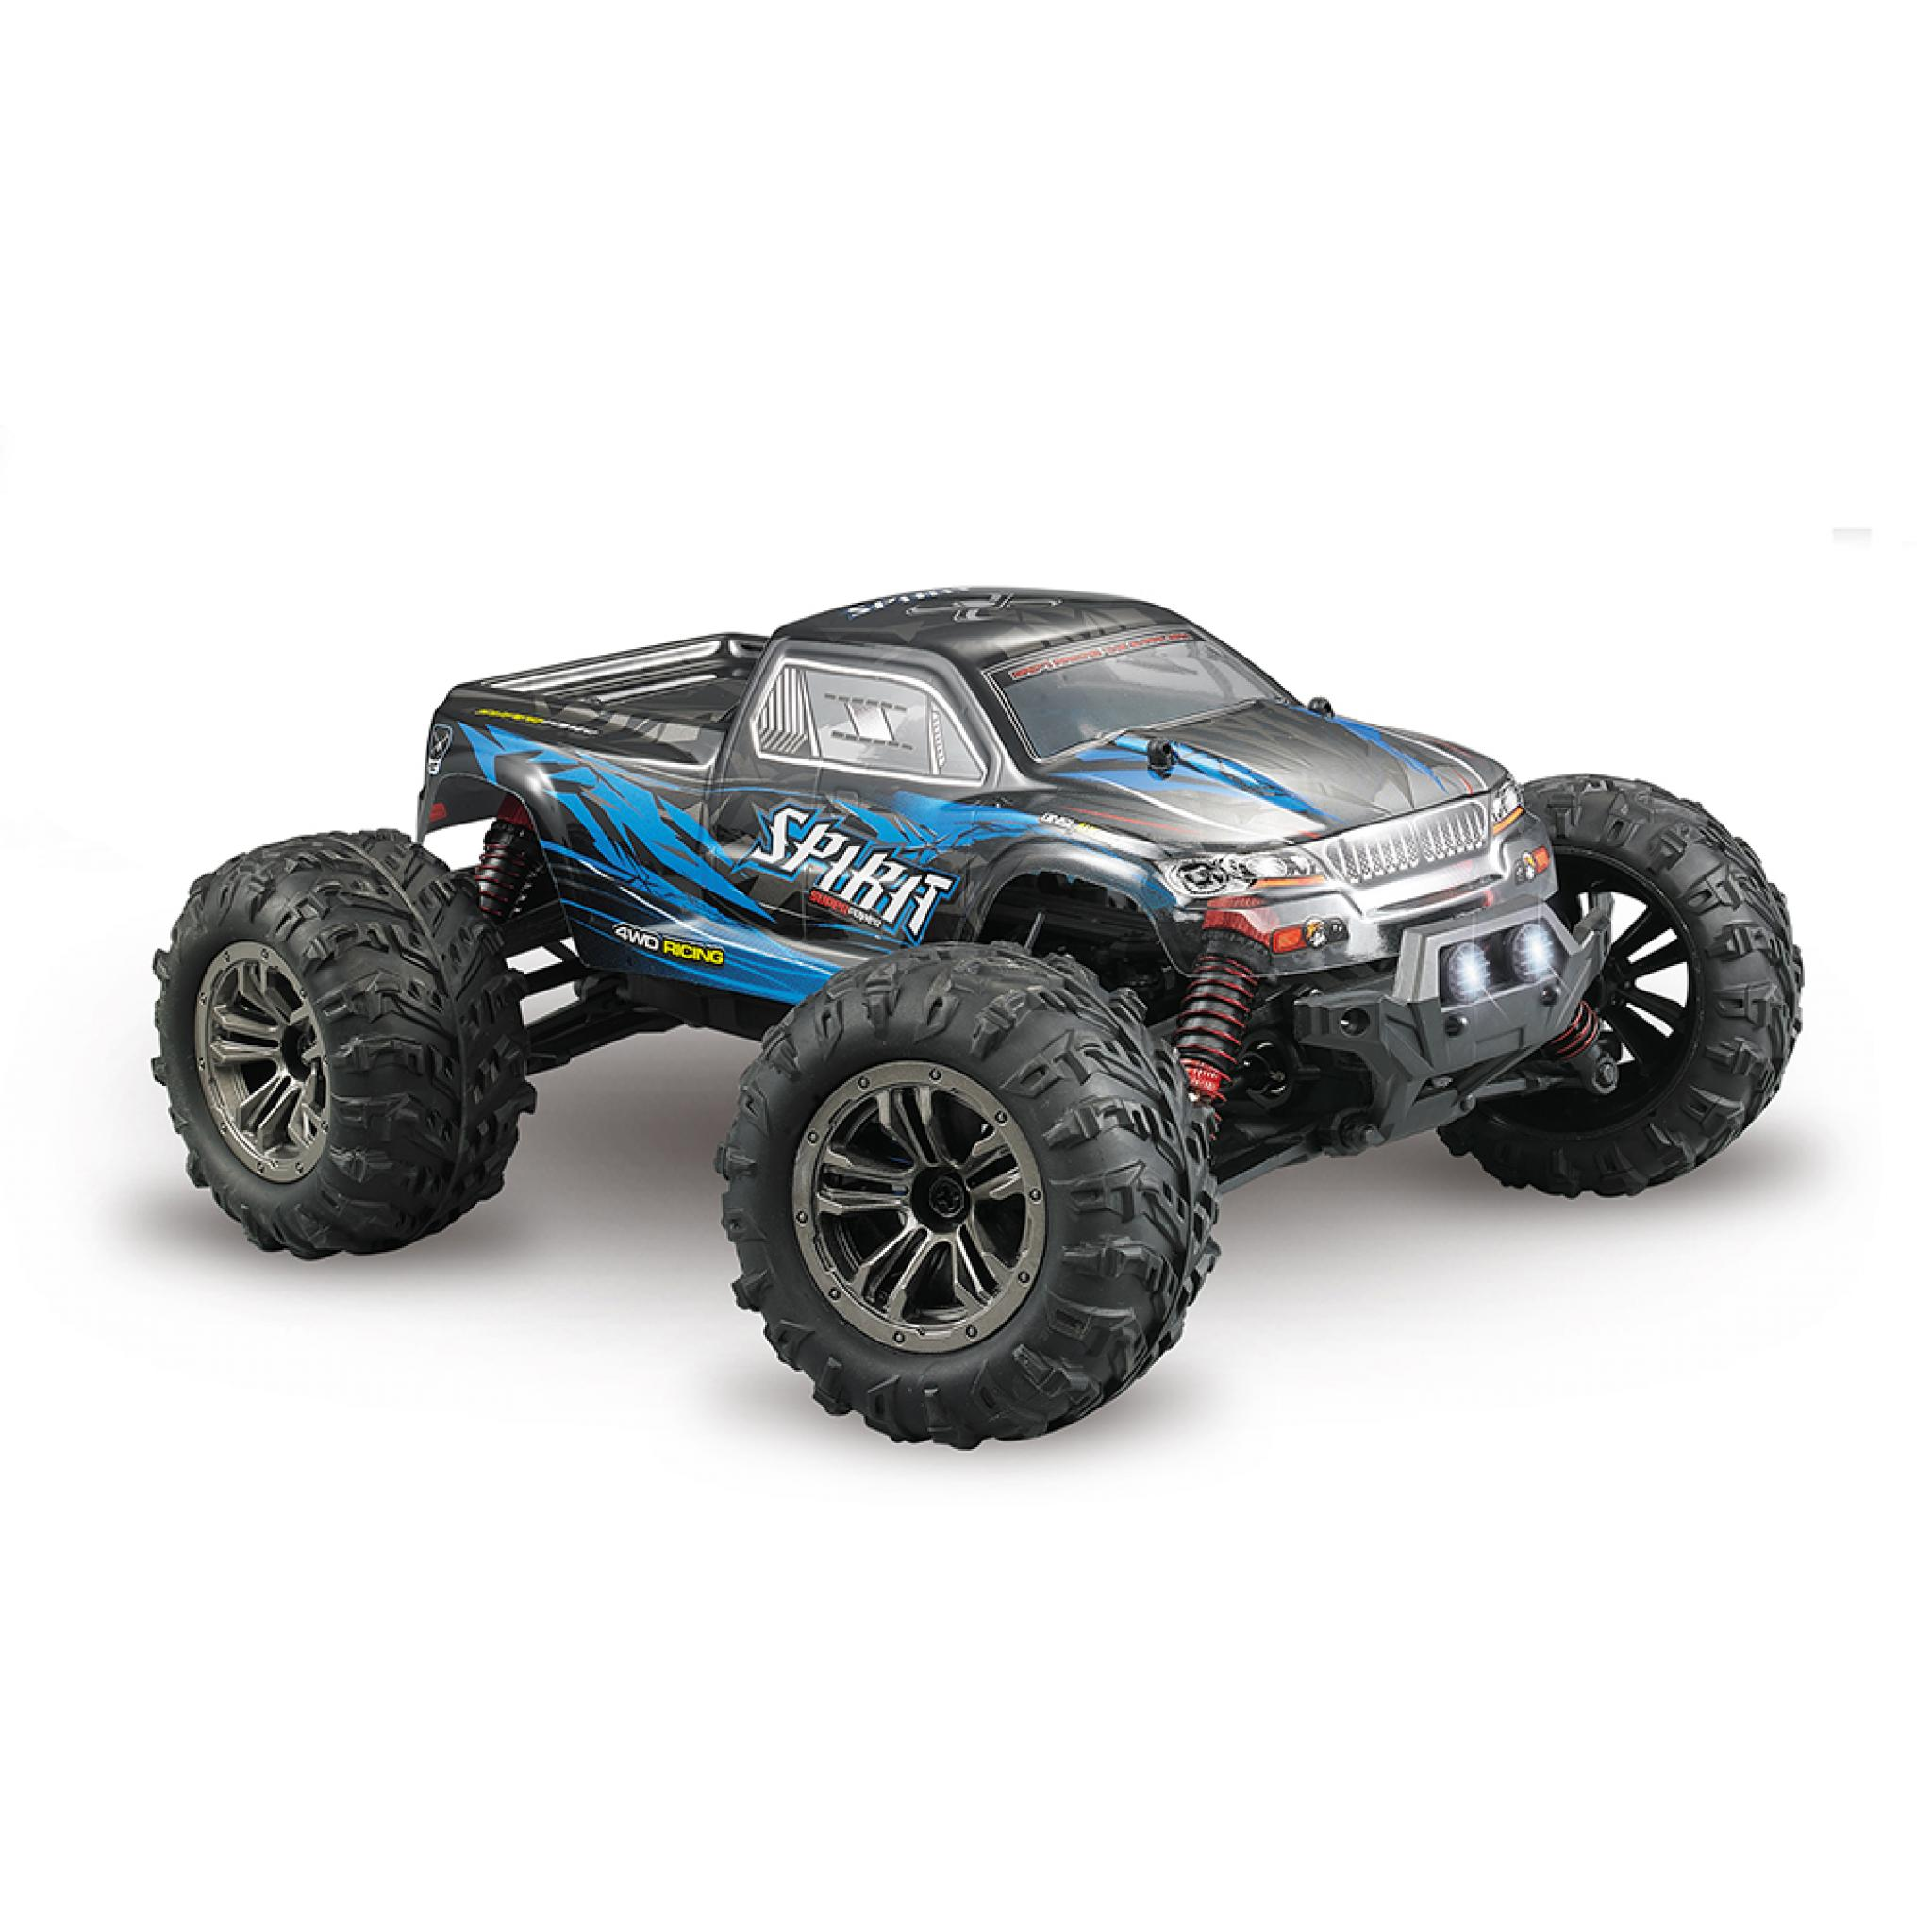 Bluelaser Rc Car 1 16 Radio Controlled Off Road Rc Car Monster Truck Rc High Speed Rtr 25mph 4wd 2 4ghz Remote Control Truck 9130 Cross Country Ca